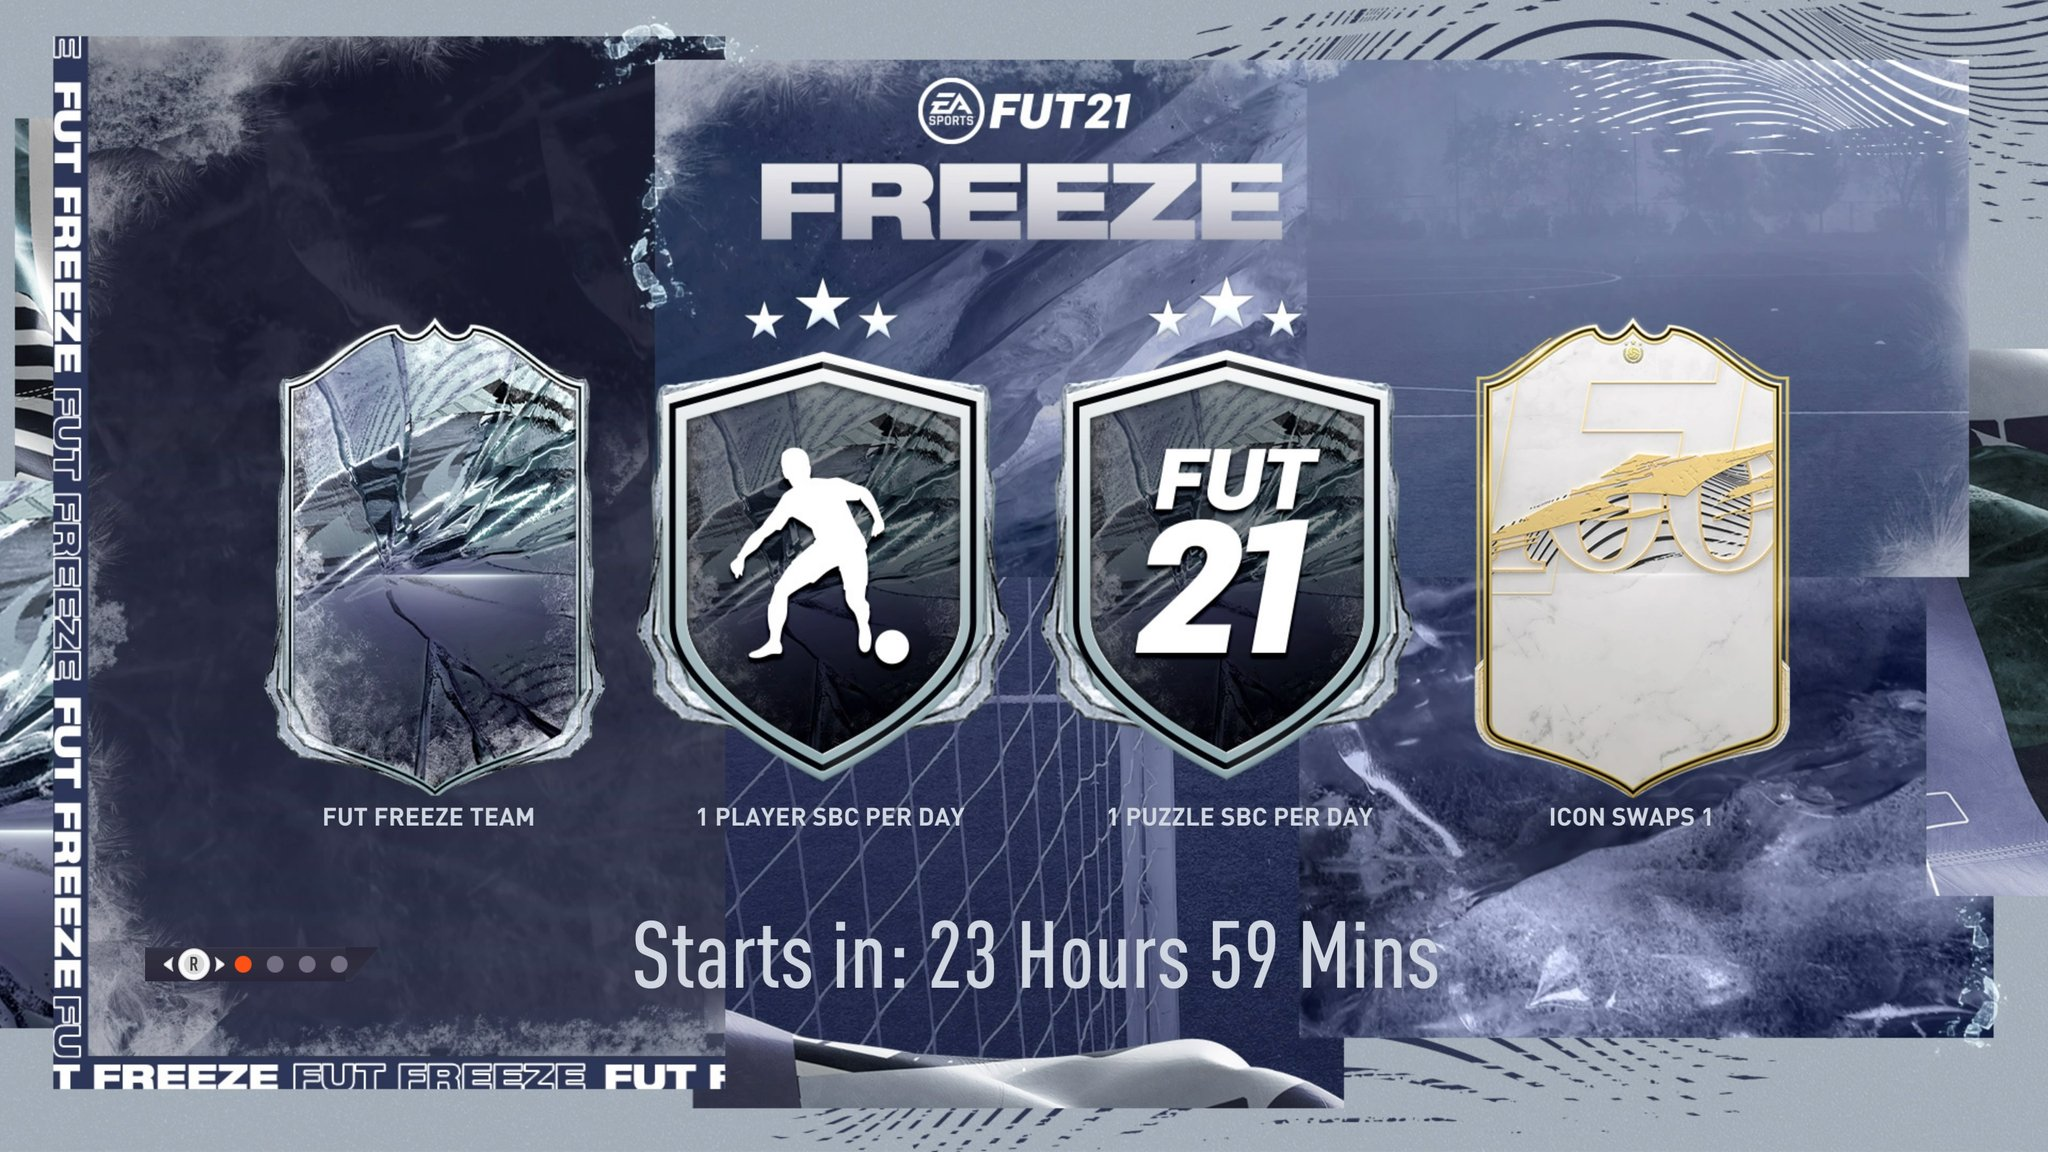 FIFA 21 Freeze Promo Event LIVE: FUT Freeze Squad Players, Release Date, Cards, Challenge SBC, Schedule And Everything You Need To Know